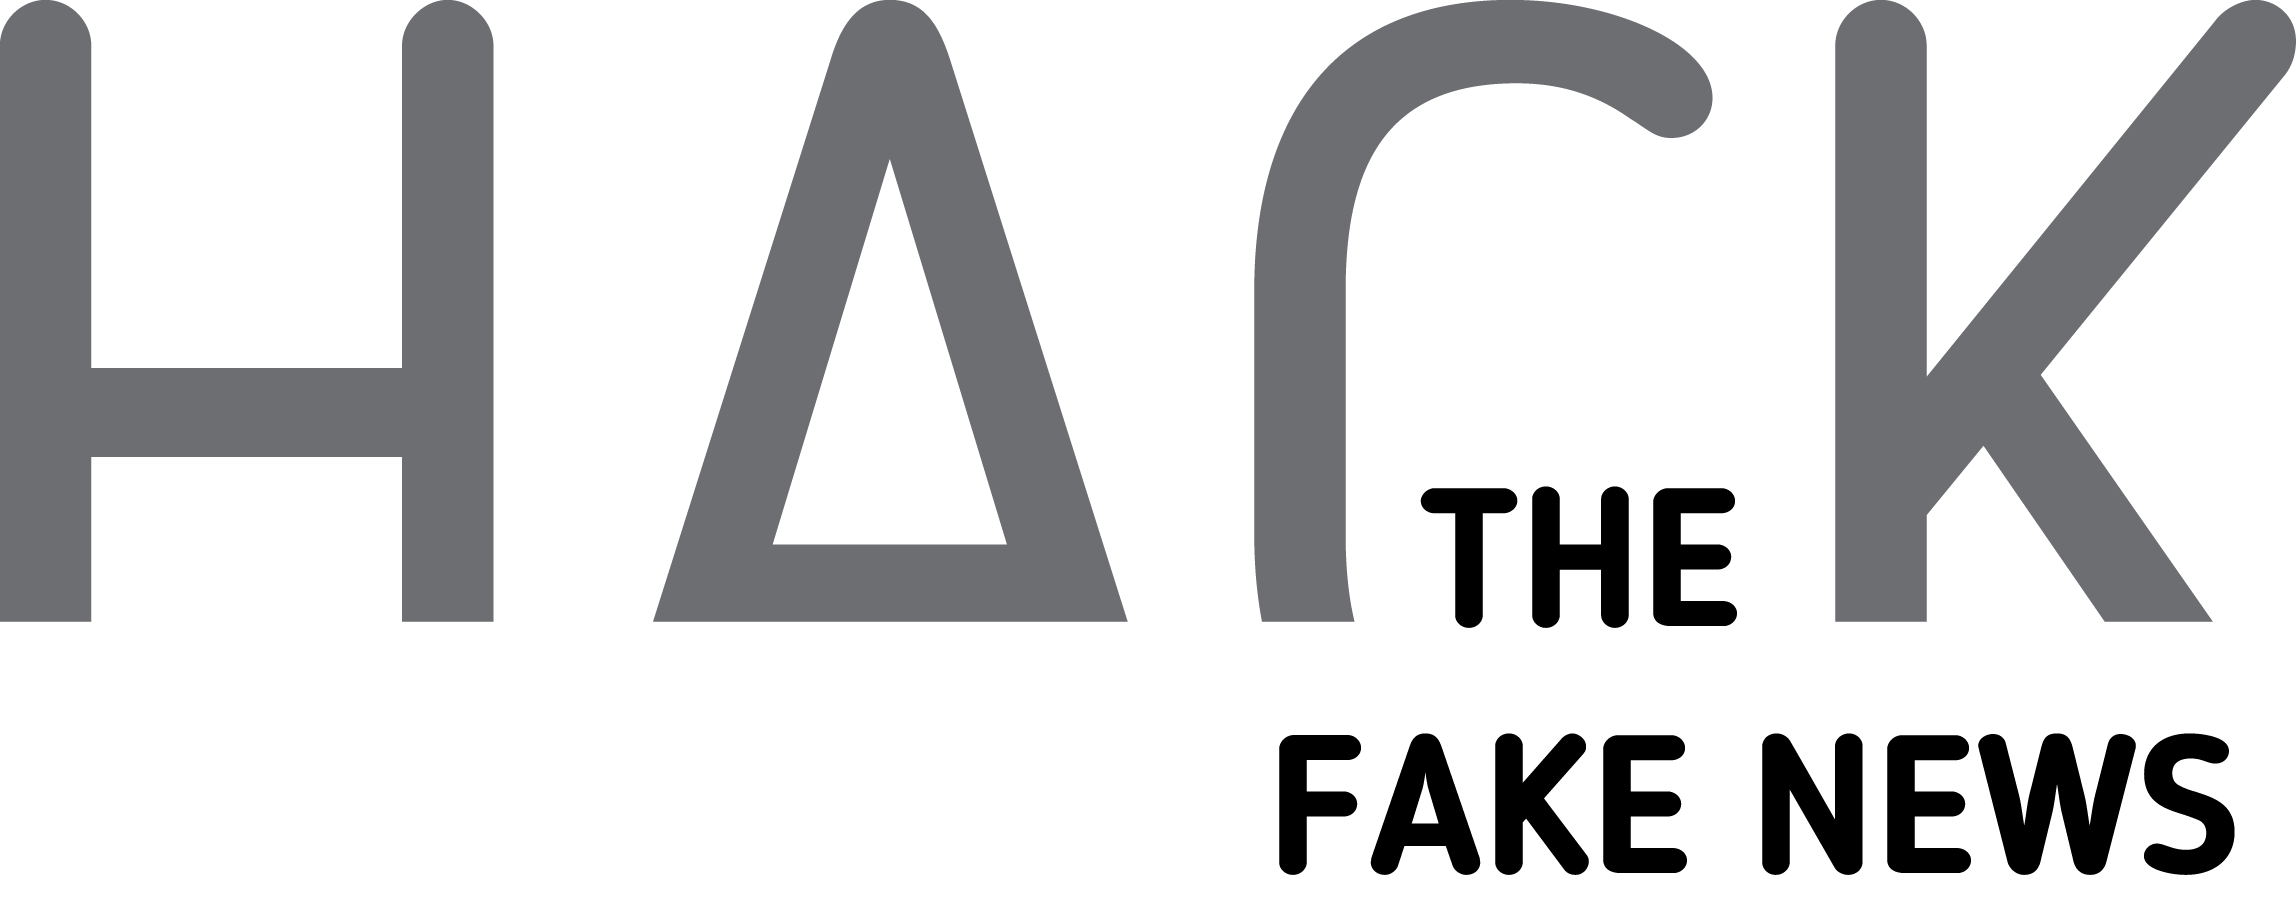 fake news initiative